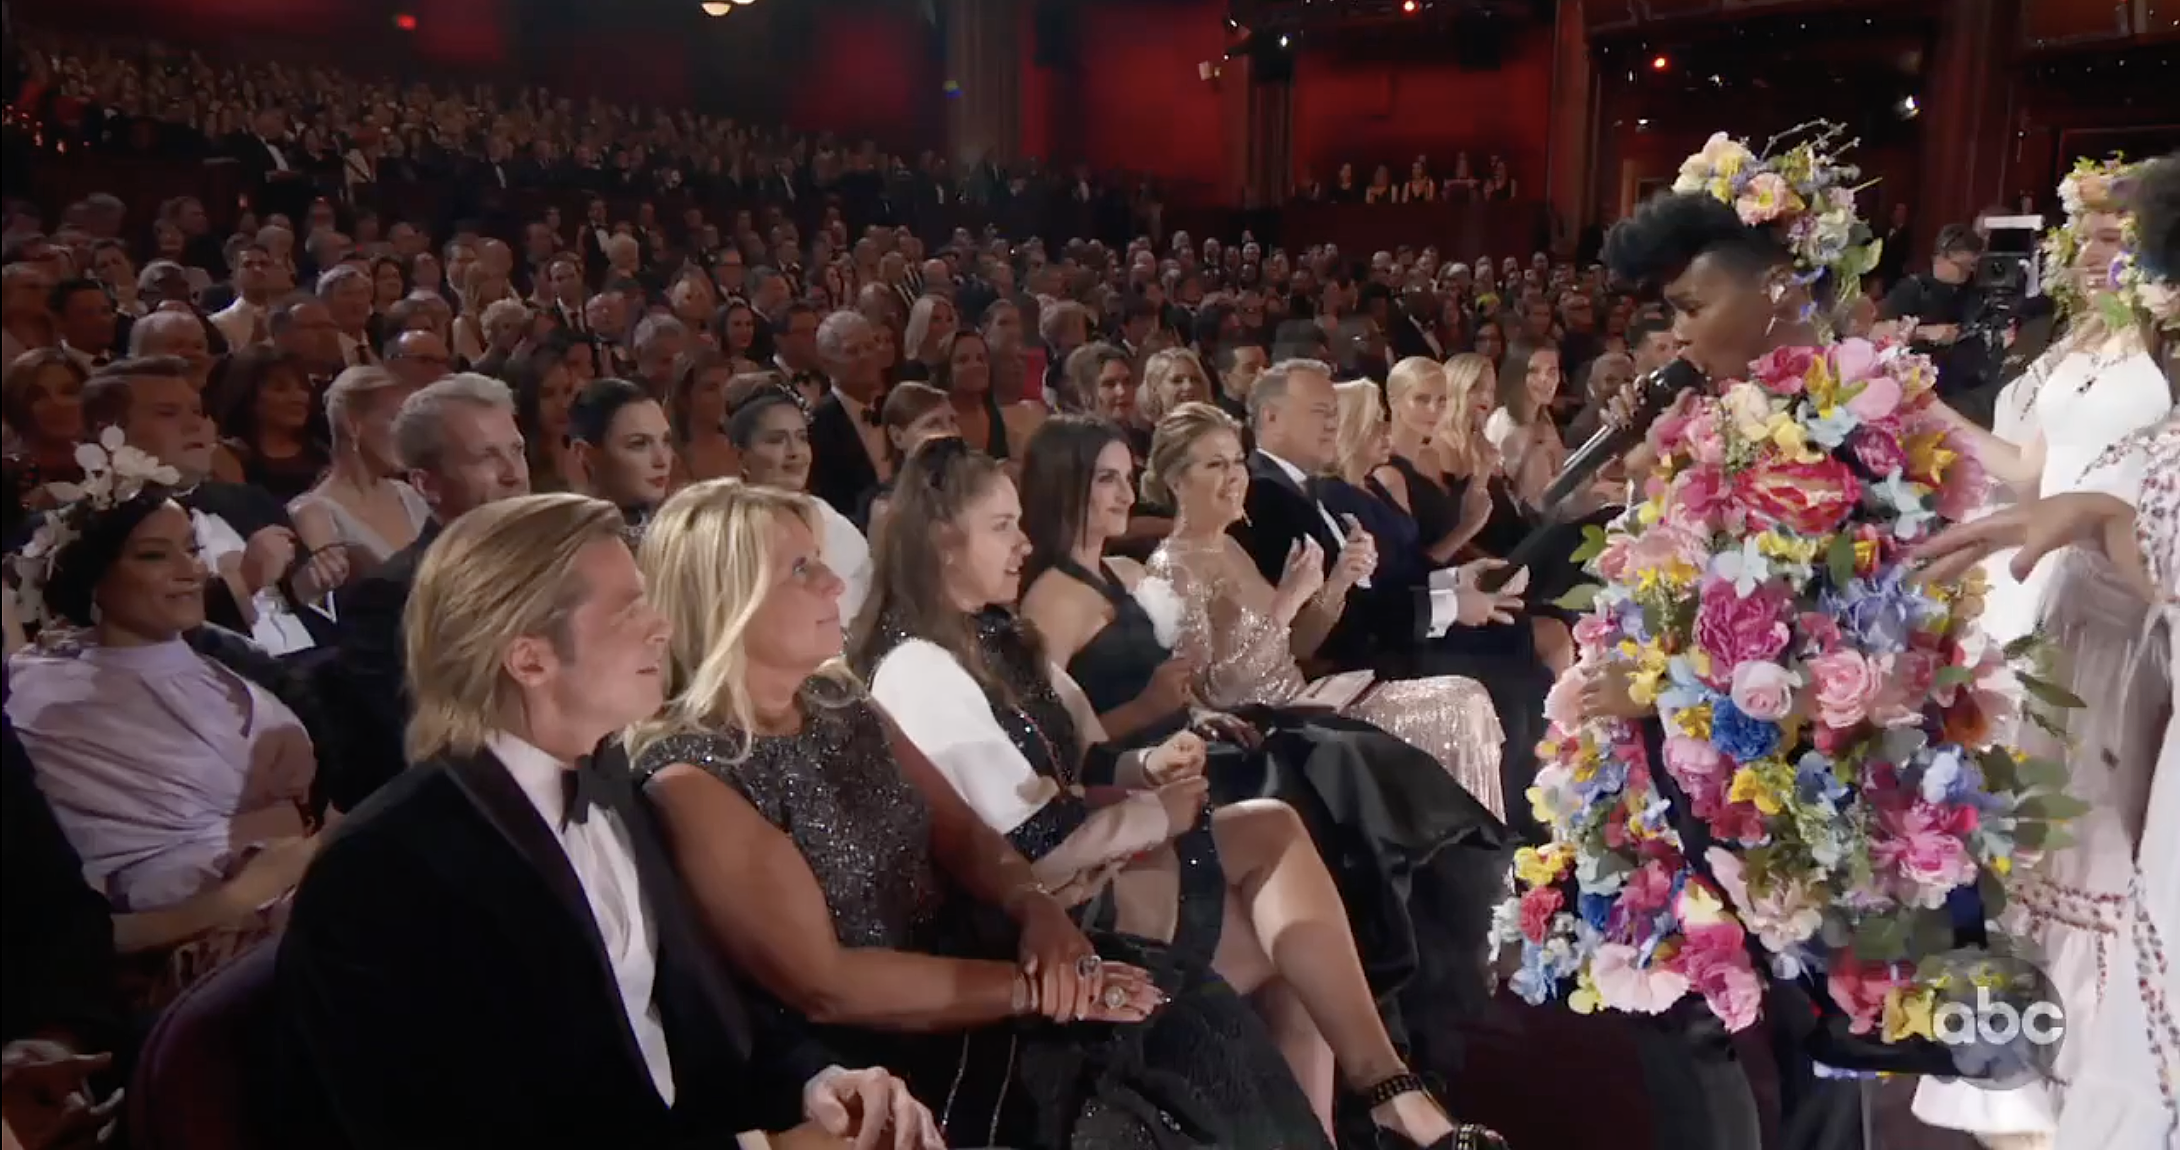 Janelle Monae, decked out in Midsommar garb, serenading Brad Pitt in the Oscars opening number.